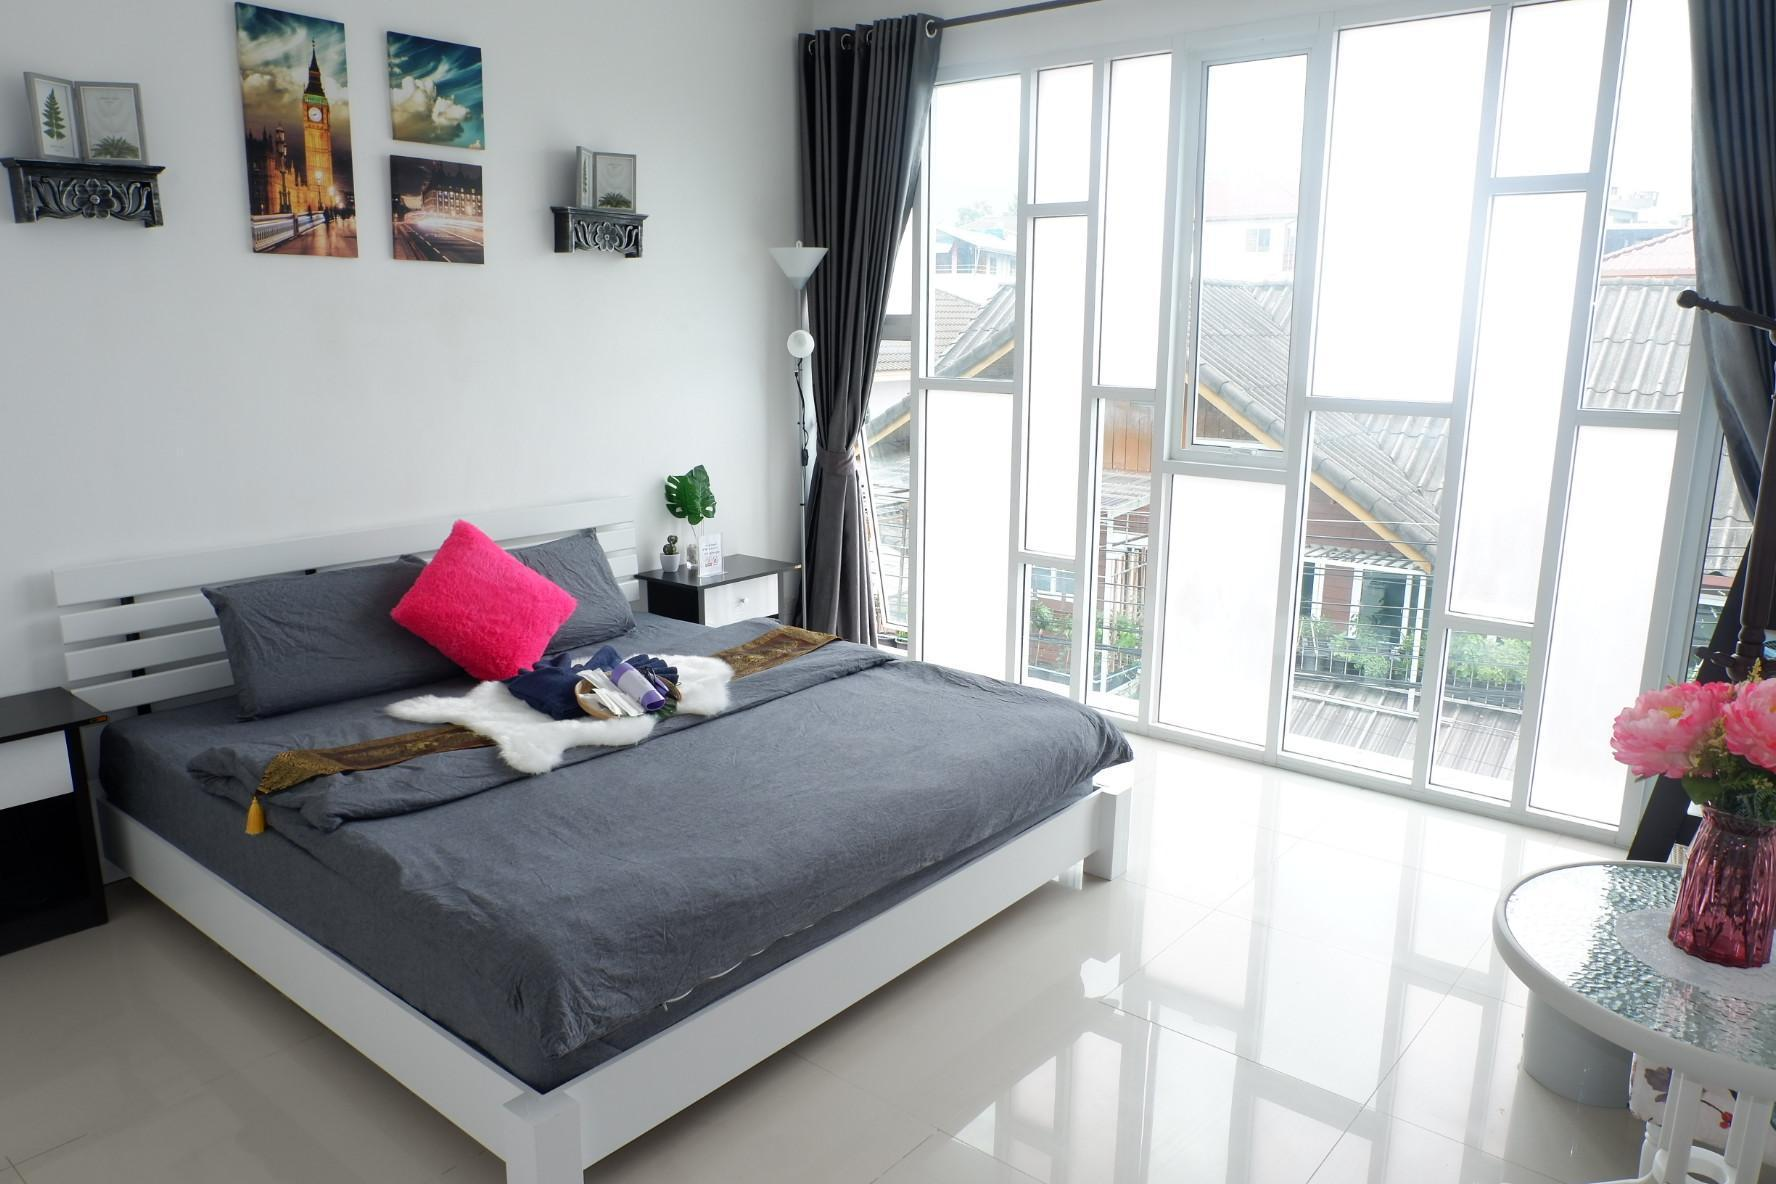 View townhouse 5BD great location in Nimman RD View townhouse 5BD great location in Nimman RD